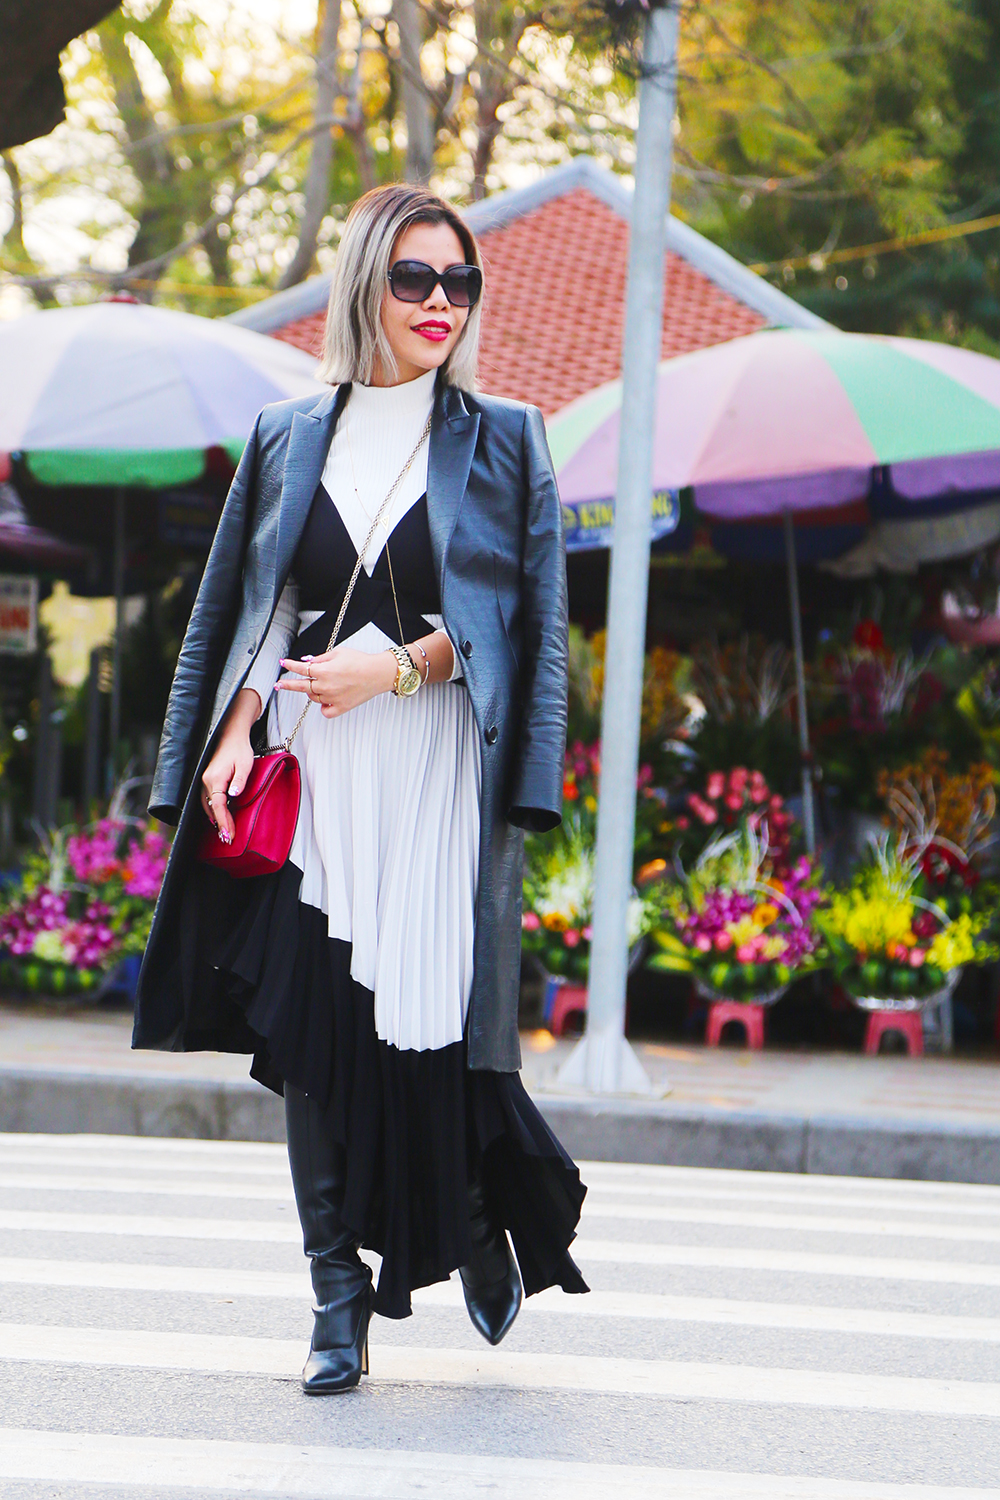 Crystal Phuong- Fashion Blogger- Winter layering